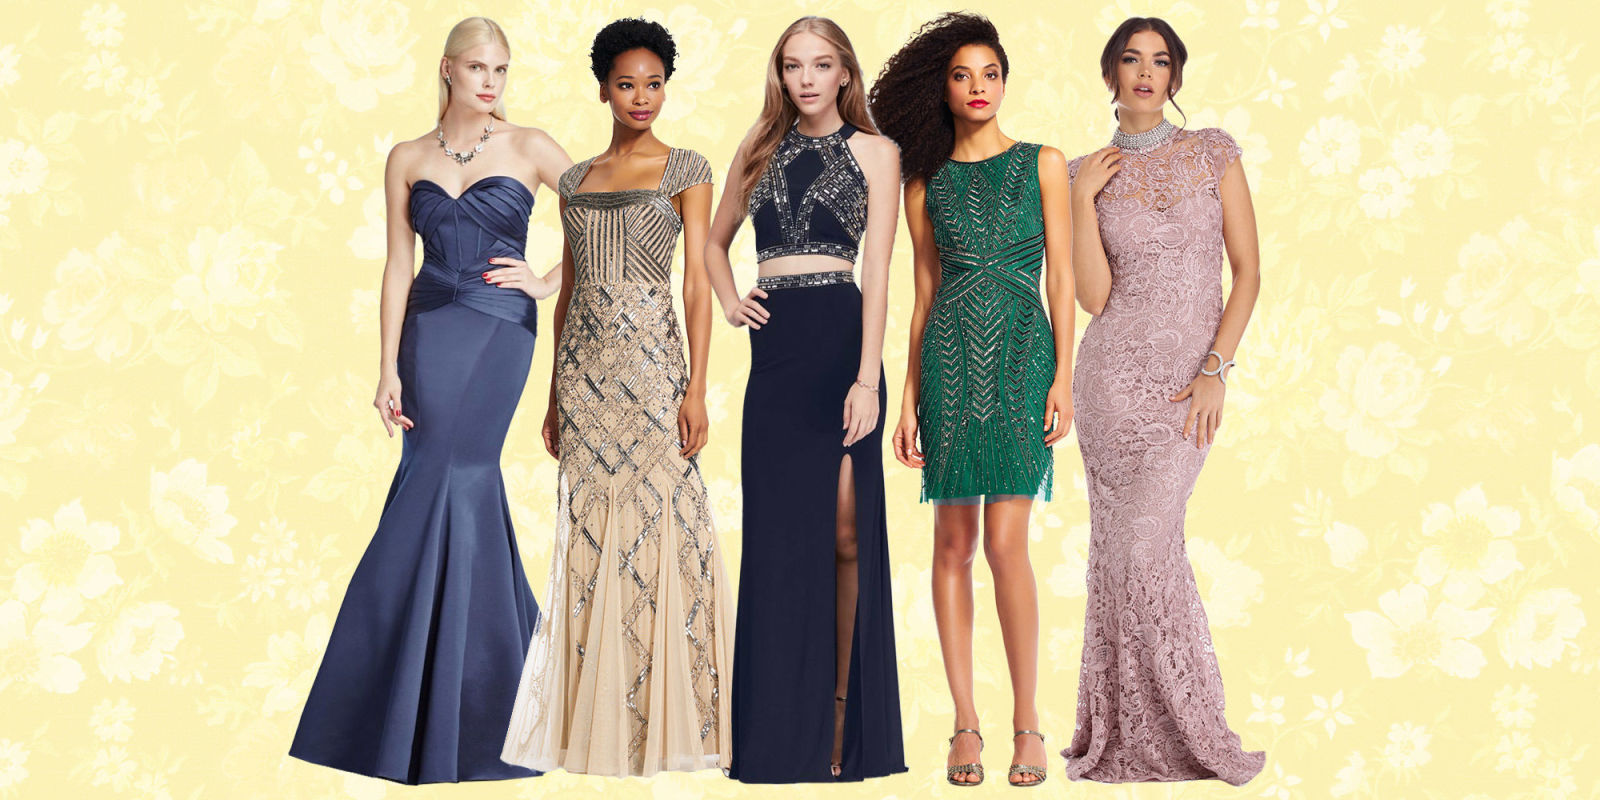 16 Stunning Vintage Prom Dresses of 2017 for a Retro Look